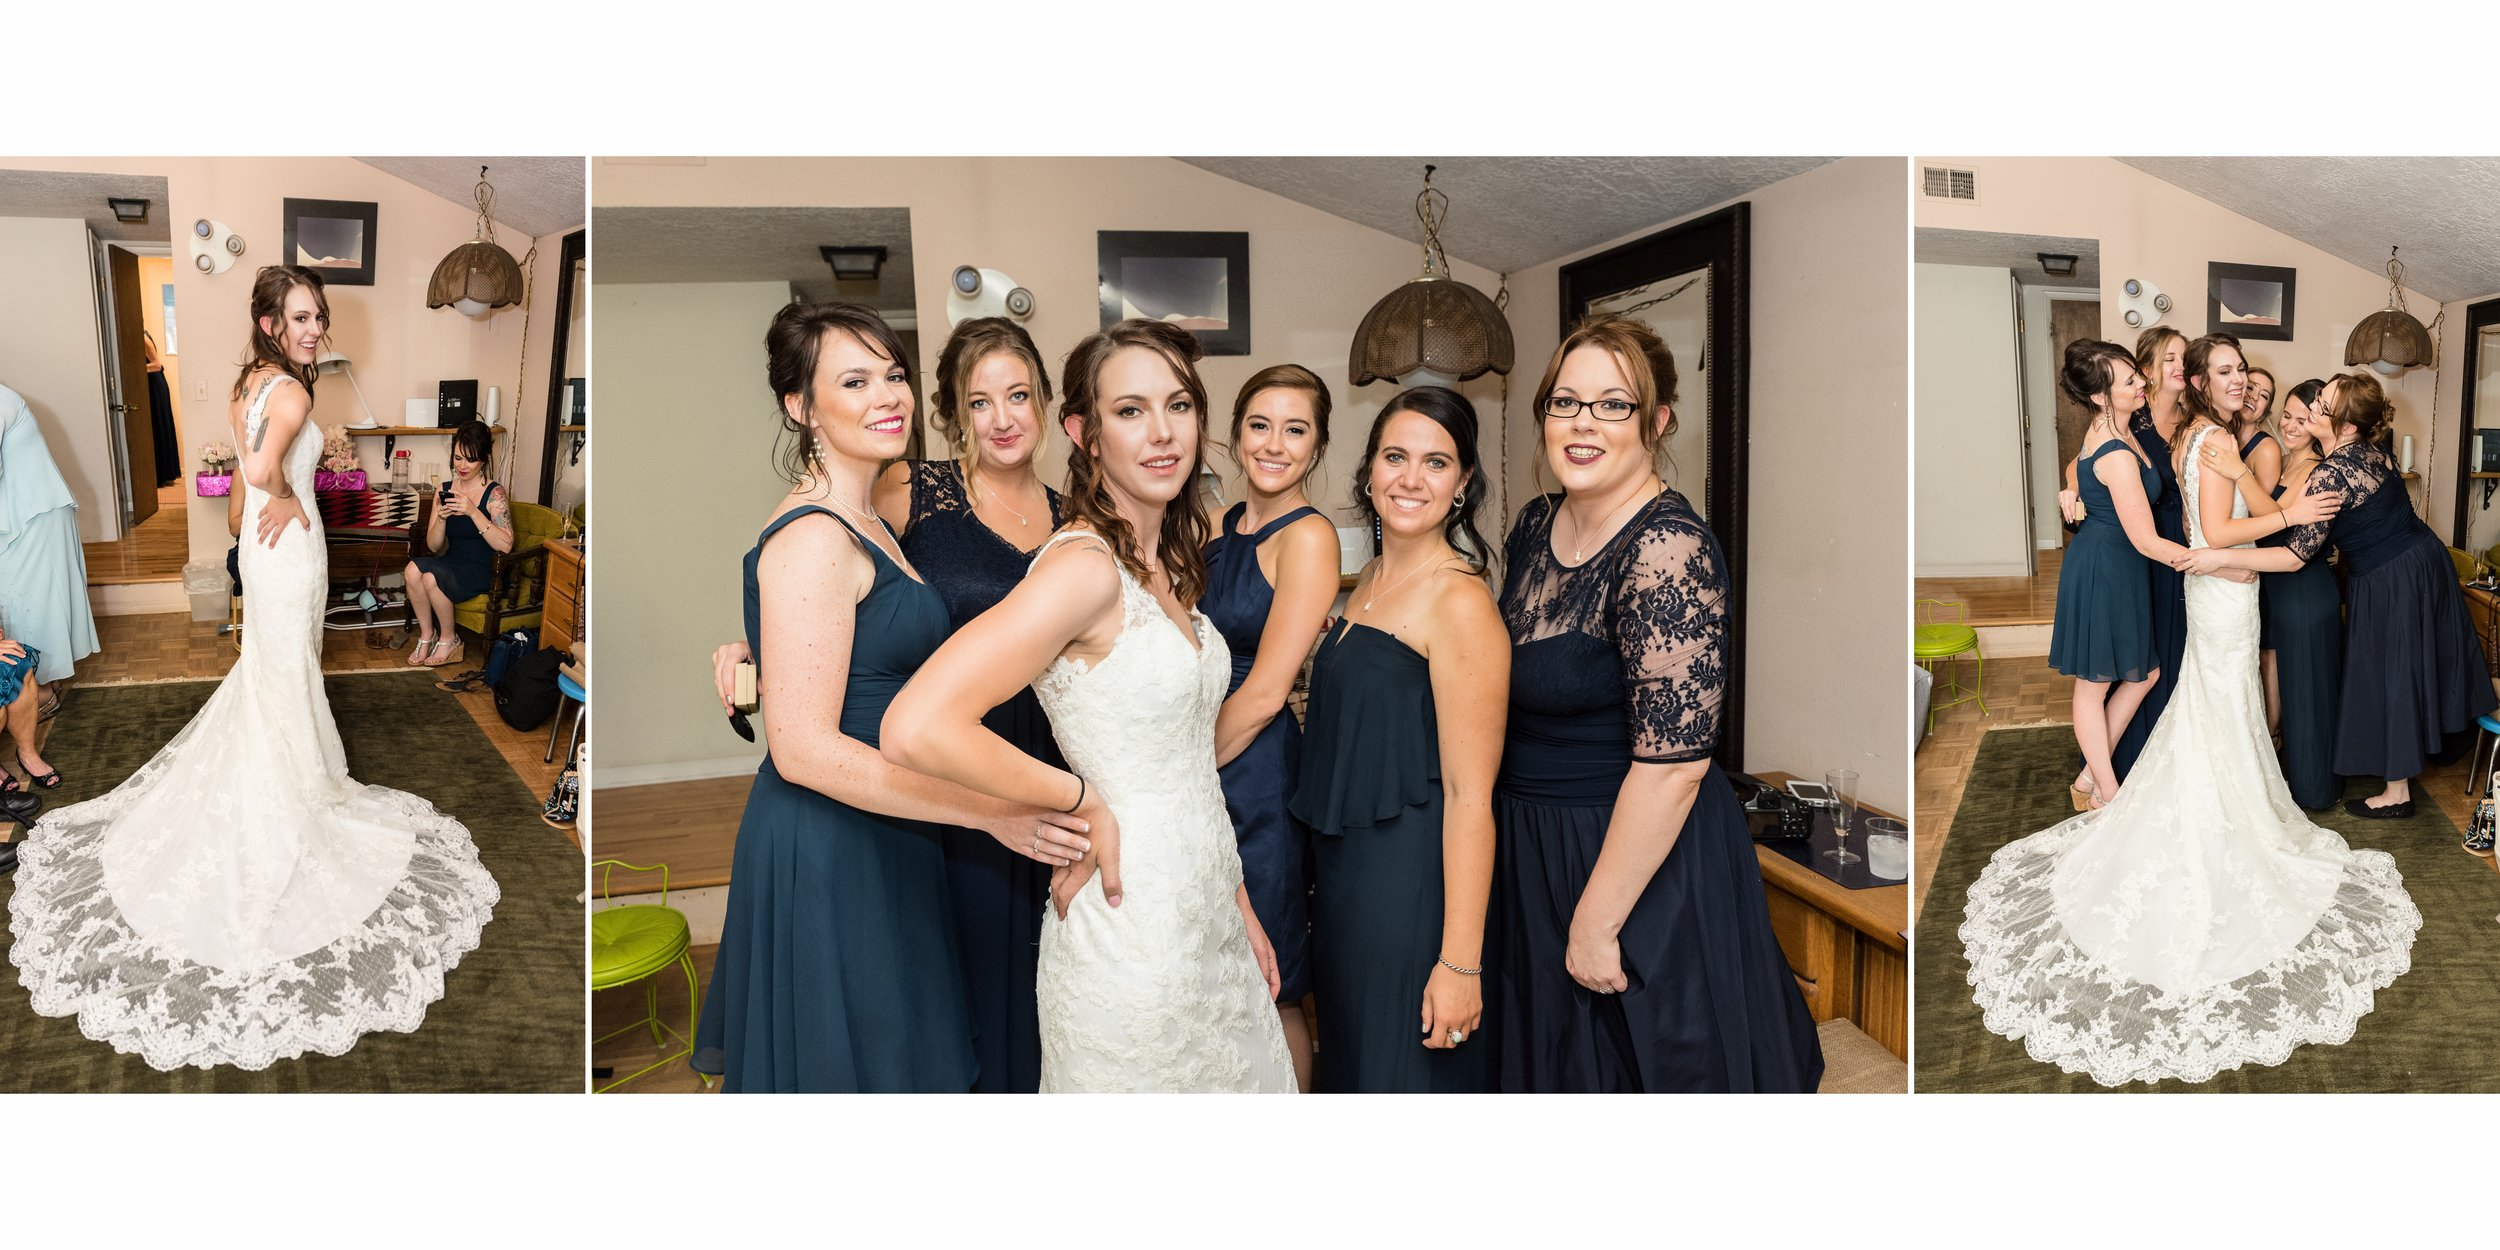 Haley and her Bridesmaids pose for portraits in the getting ready room